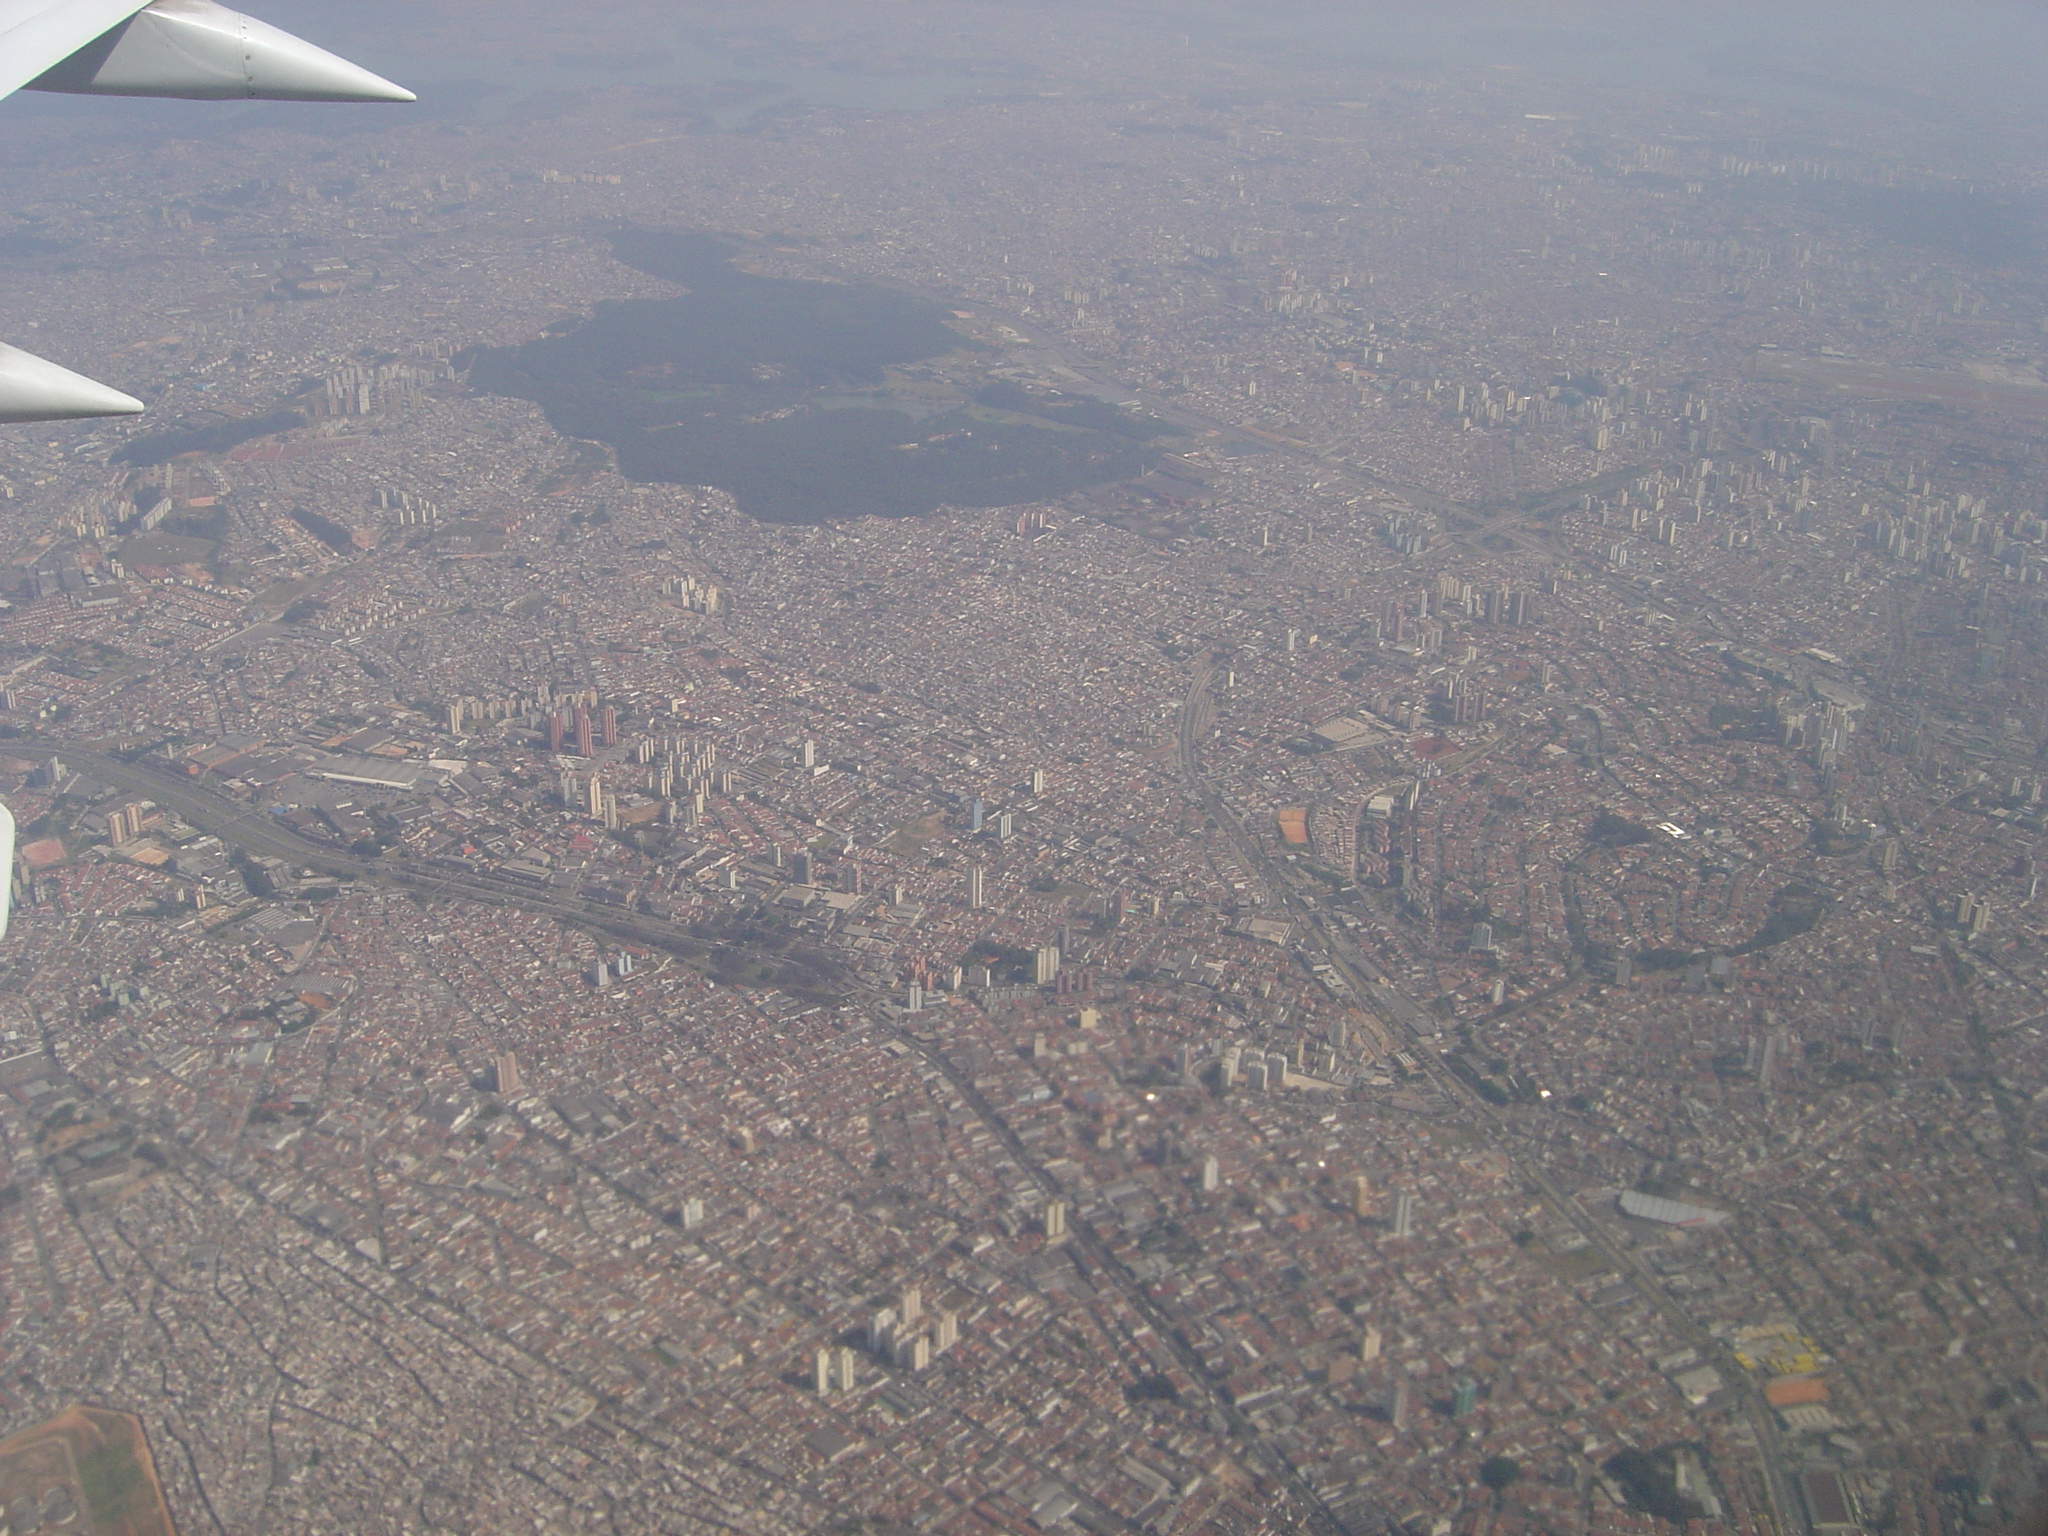 poows city altitude high up skyscrapers view from a plane